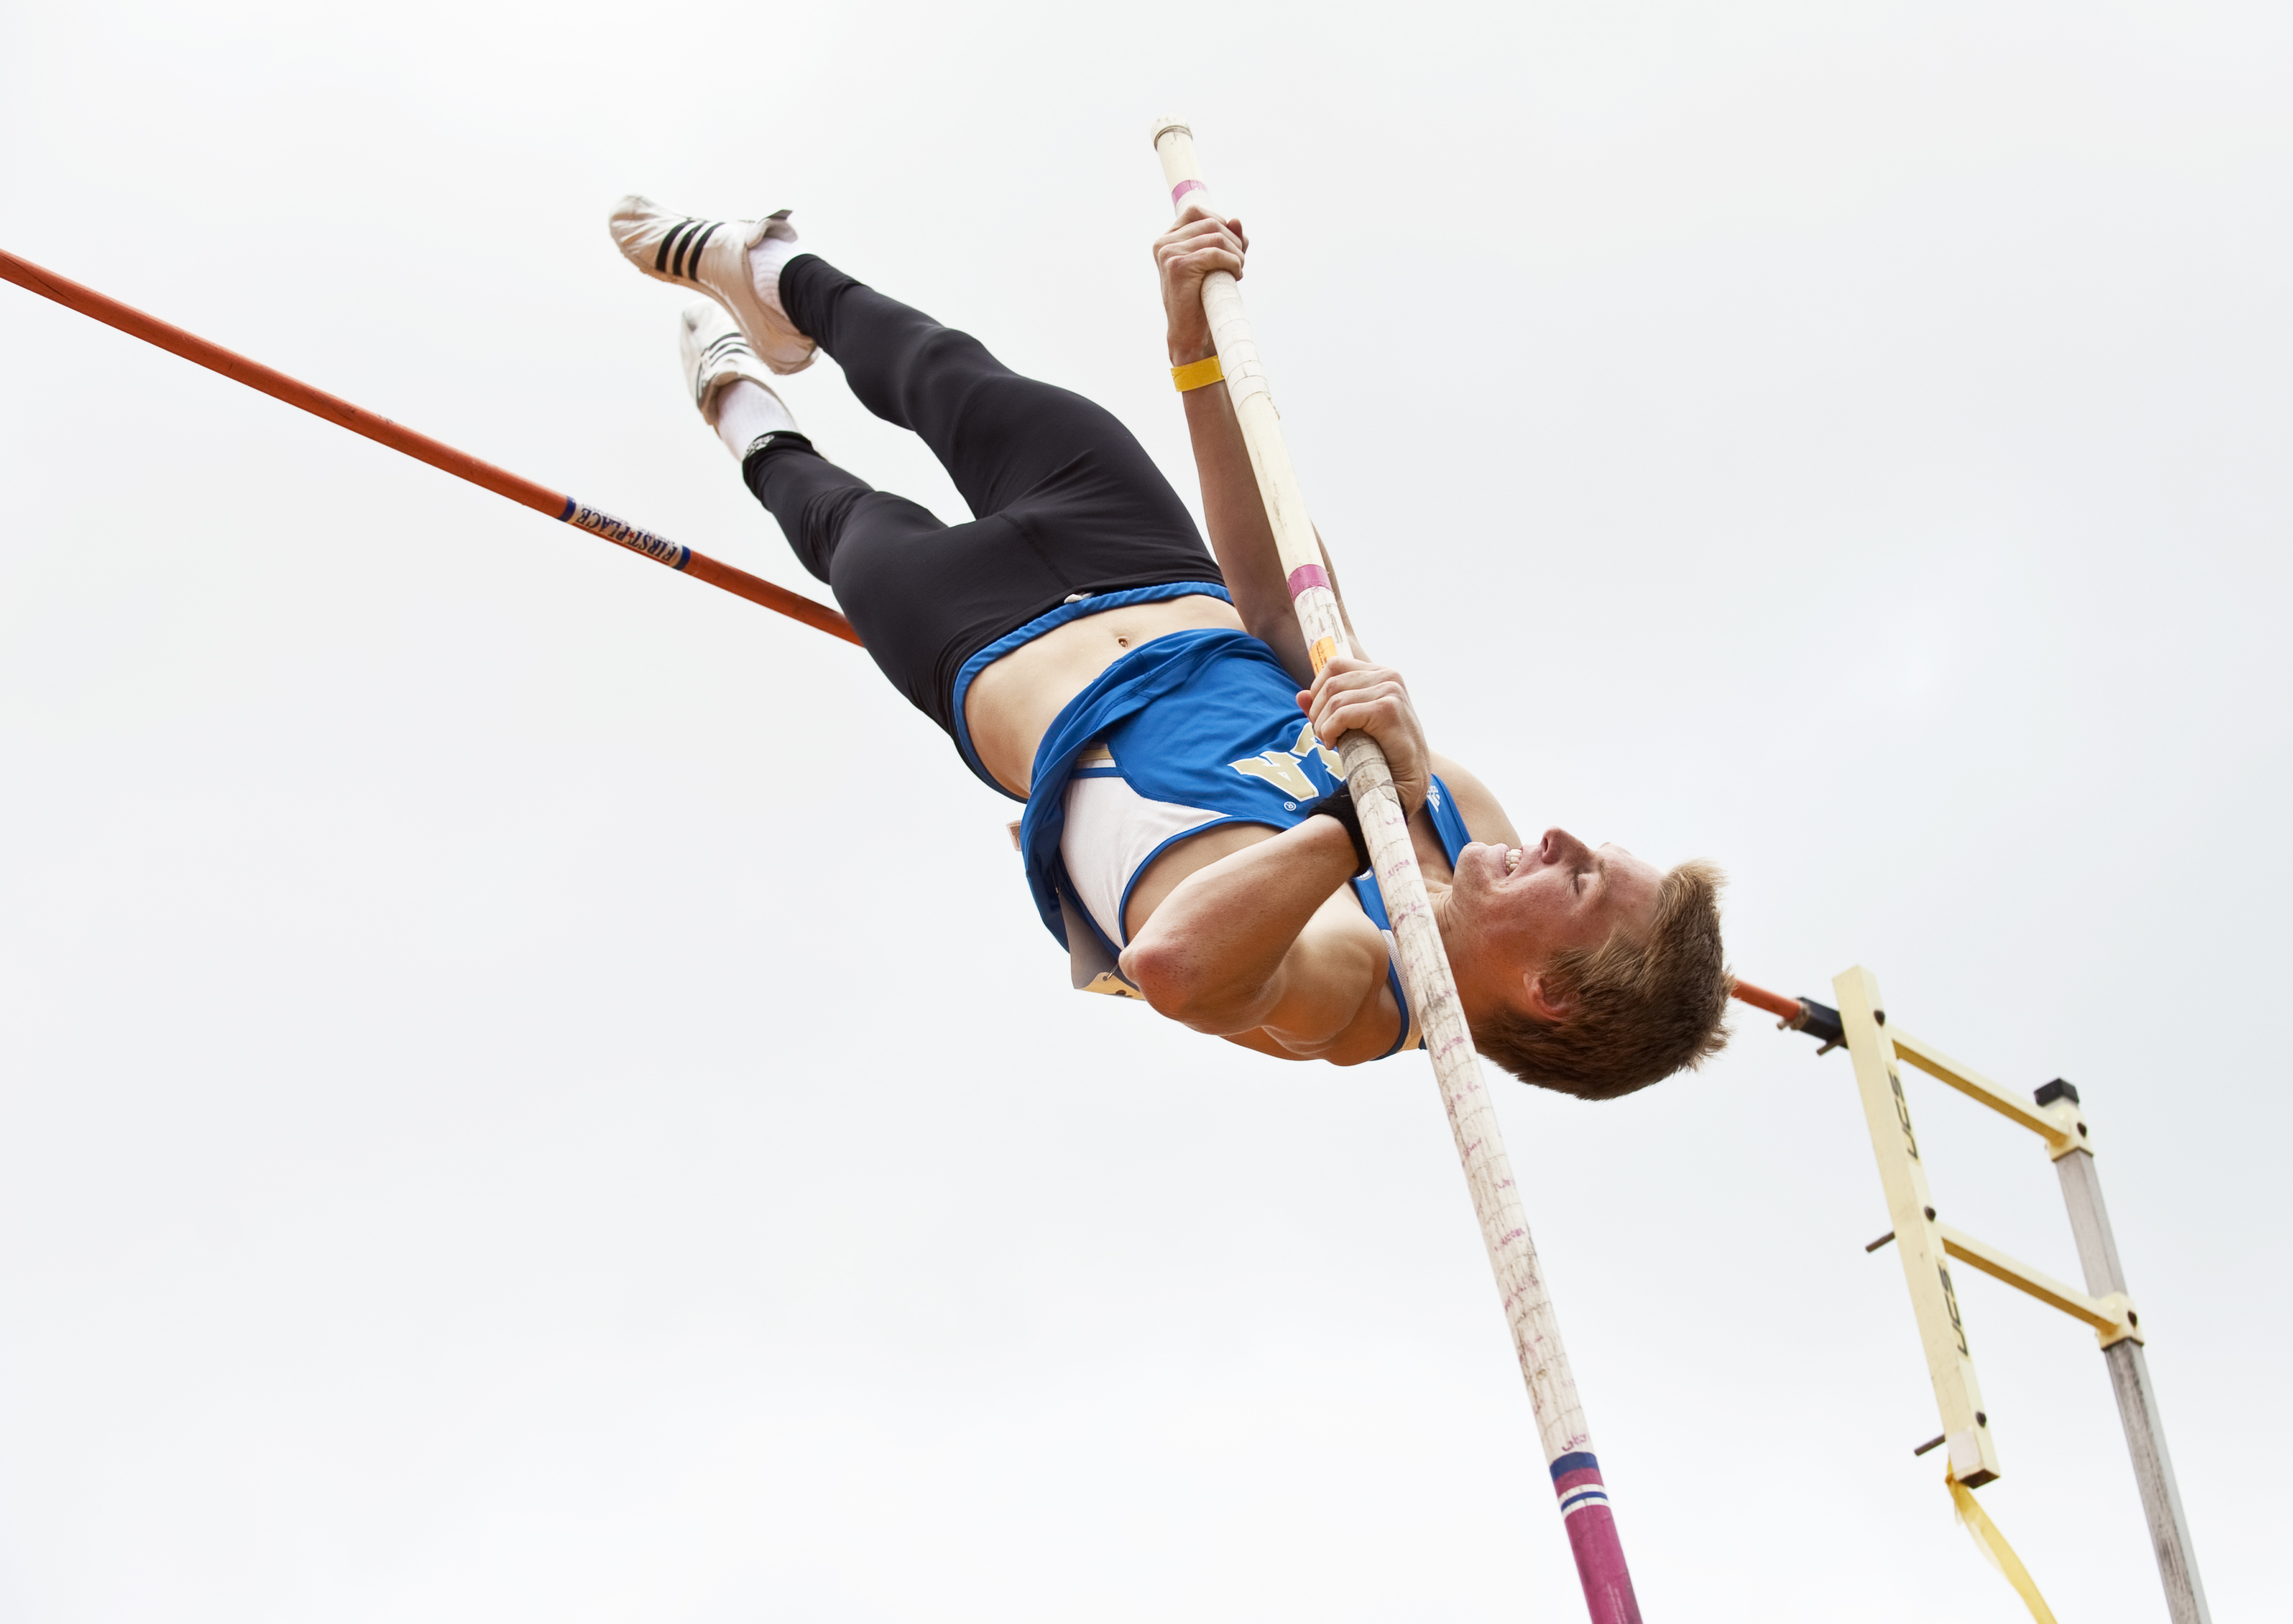 Sophomore pole vaulter Mike Woepse will compete in the NCAA West Preliminary Round this weekend in Austin, Texas, in hopes of making it to the NCAA Championships in June.